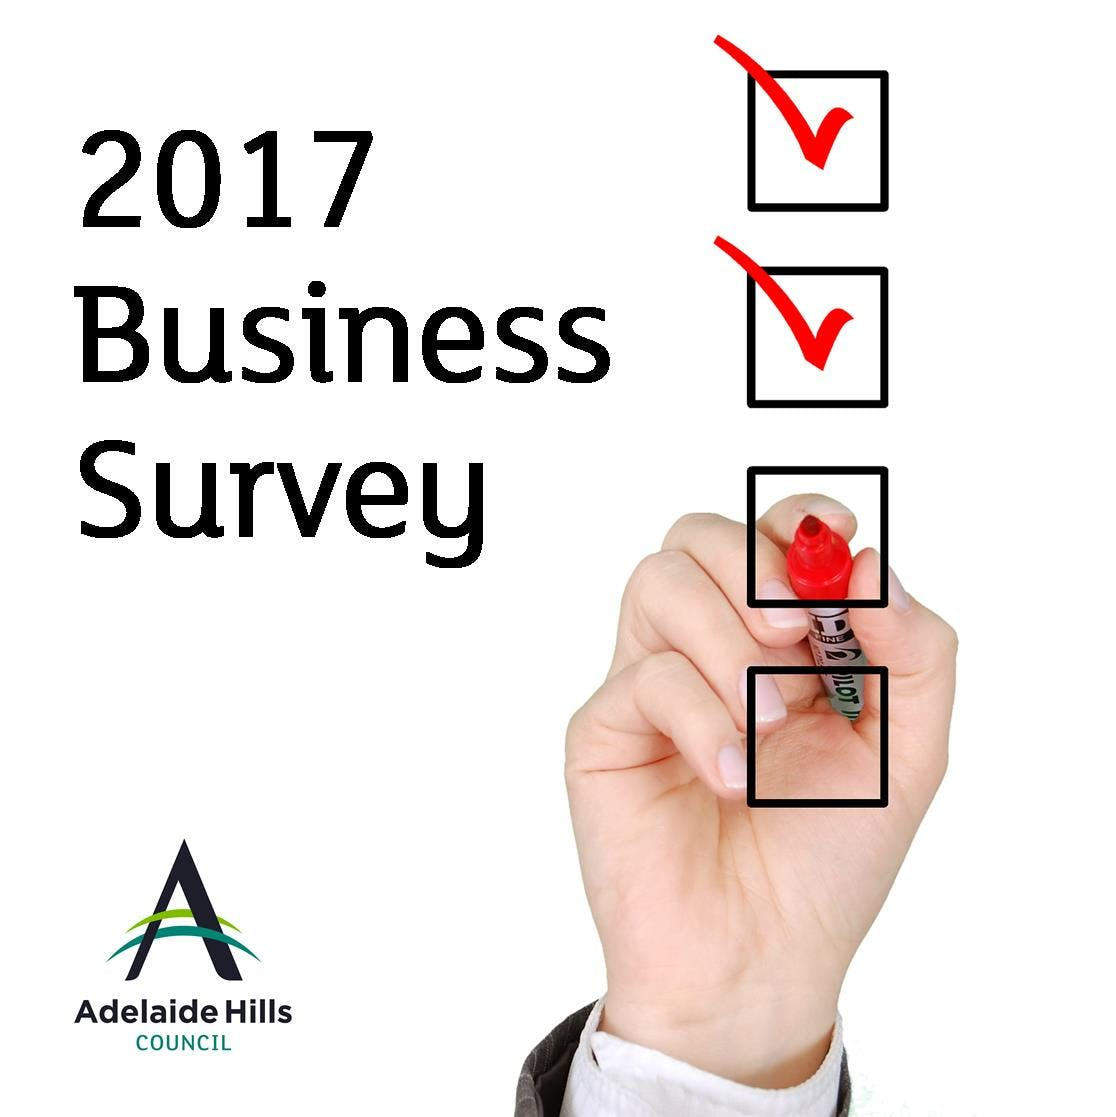 2017 business survey tile